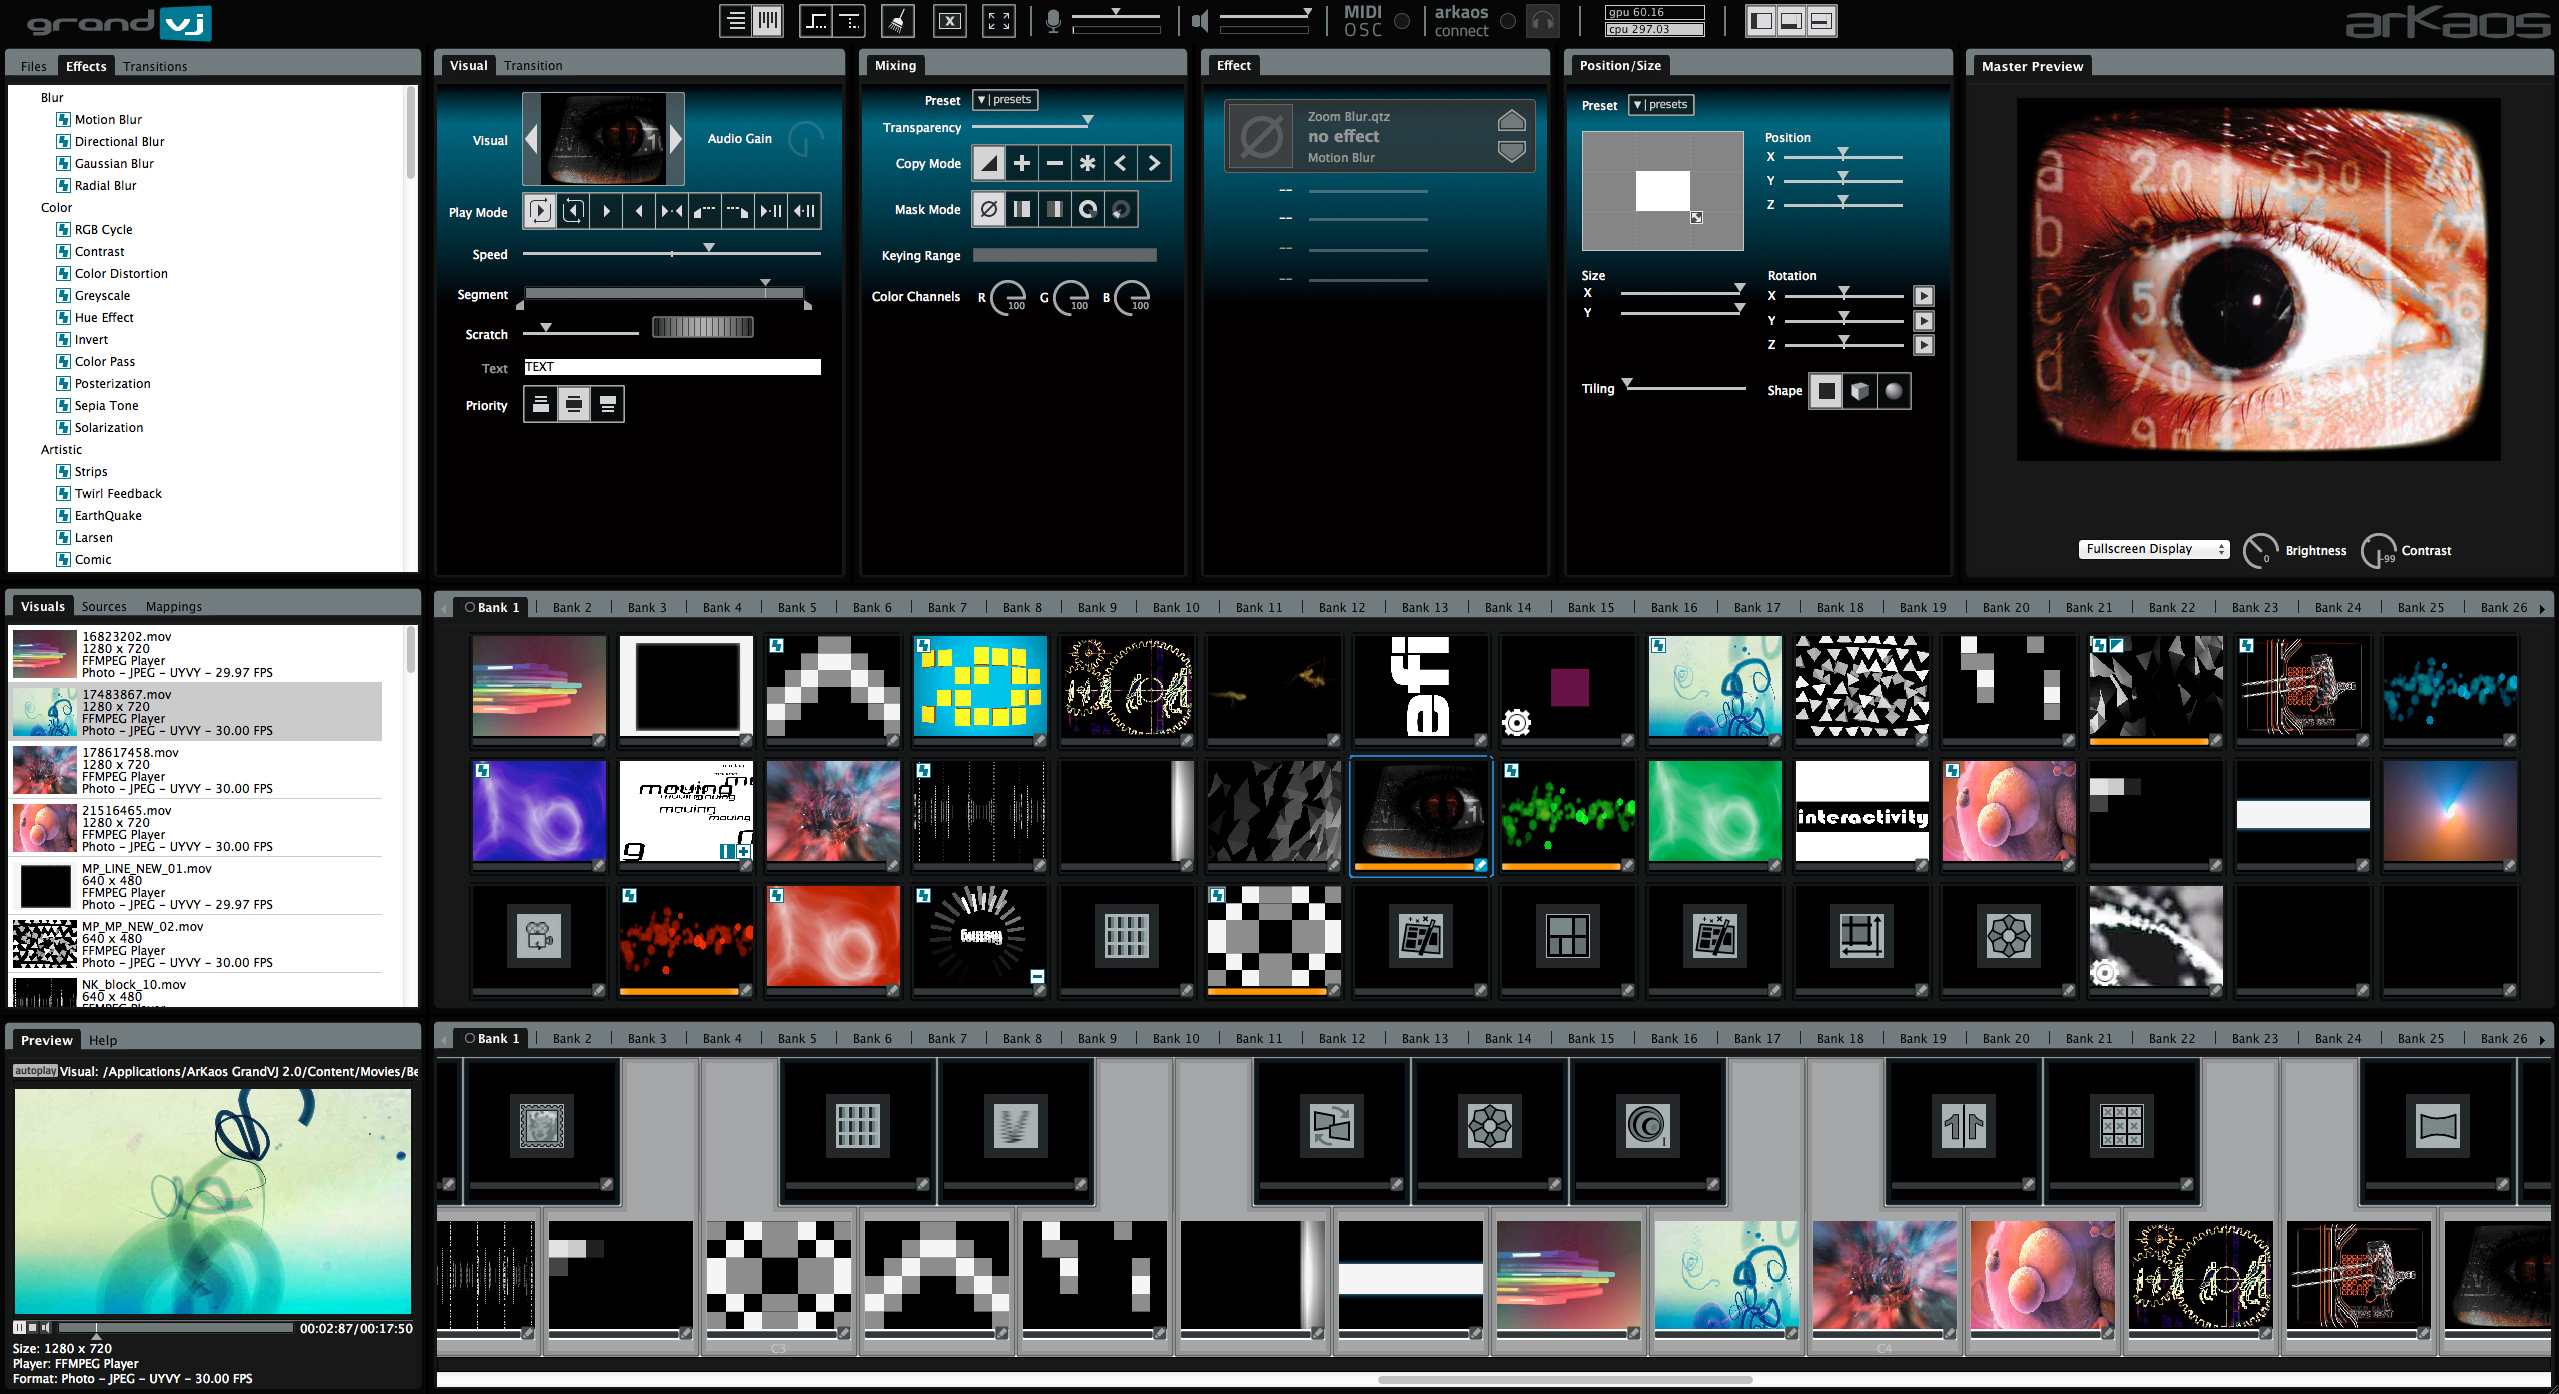 About Grandvj Eight Channels Vj Software For Real Time